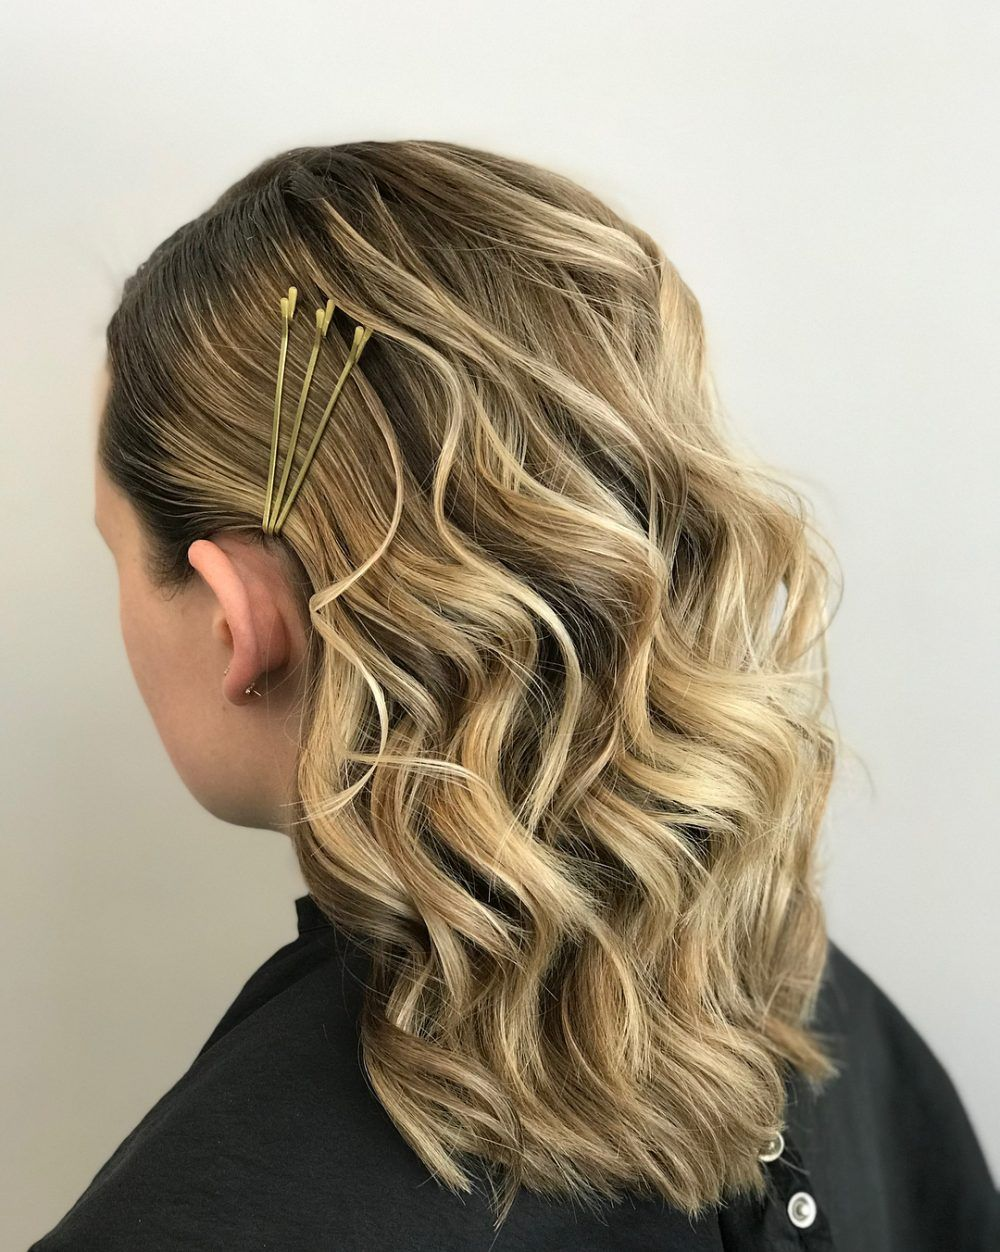 20 Easy Prom Hairstyles for 2020 You Have to See | Simple ...